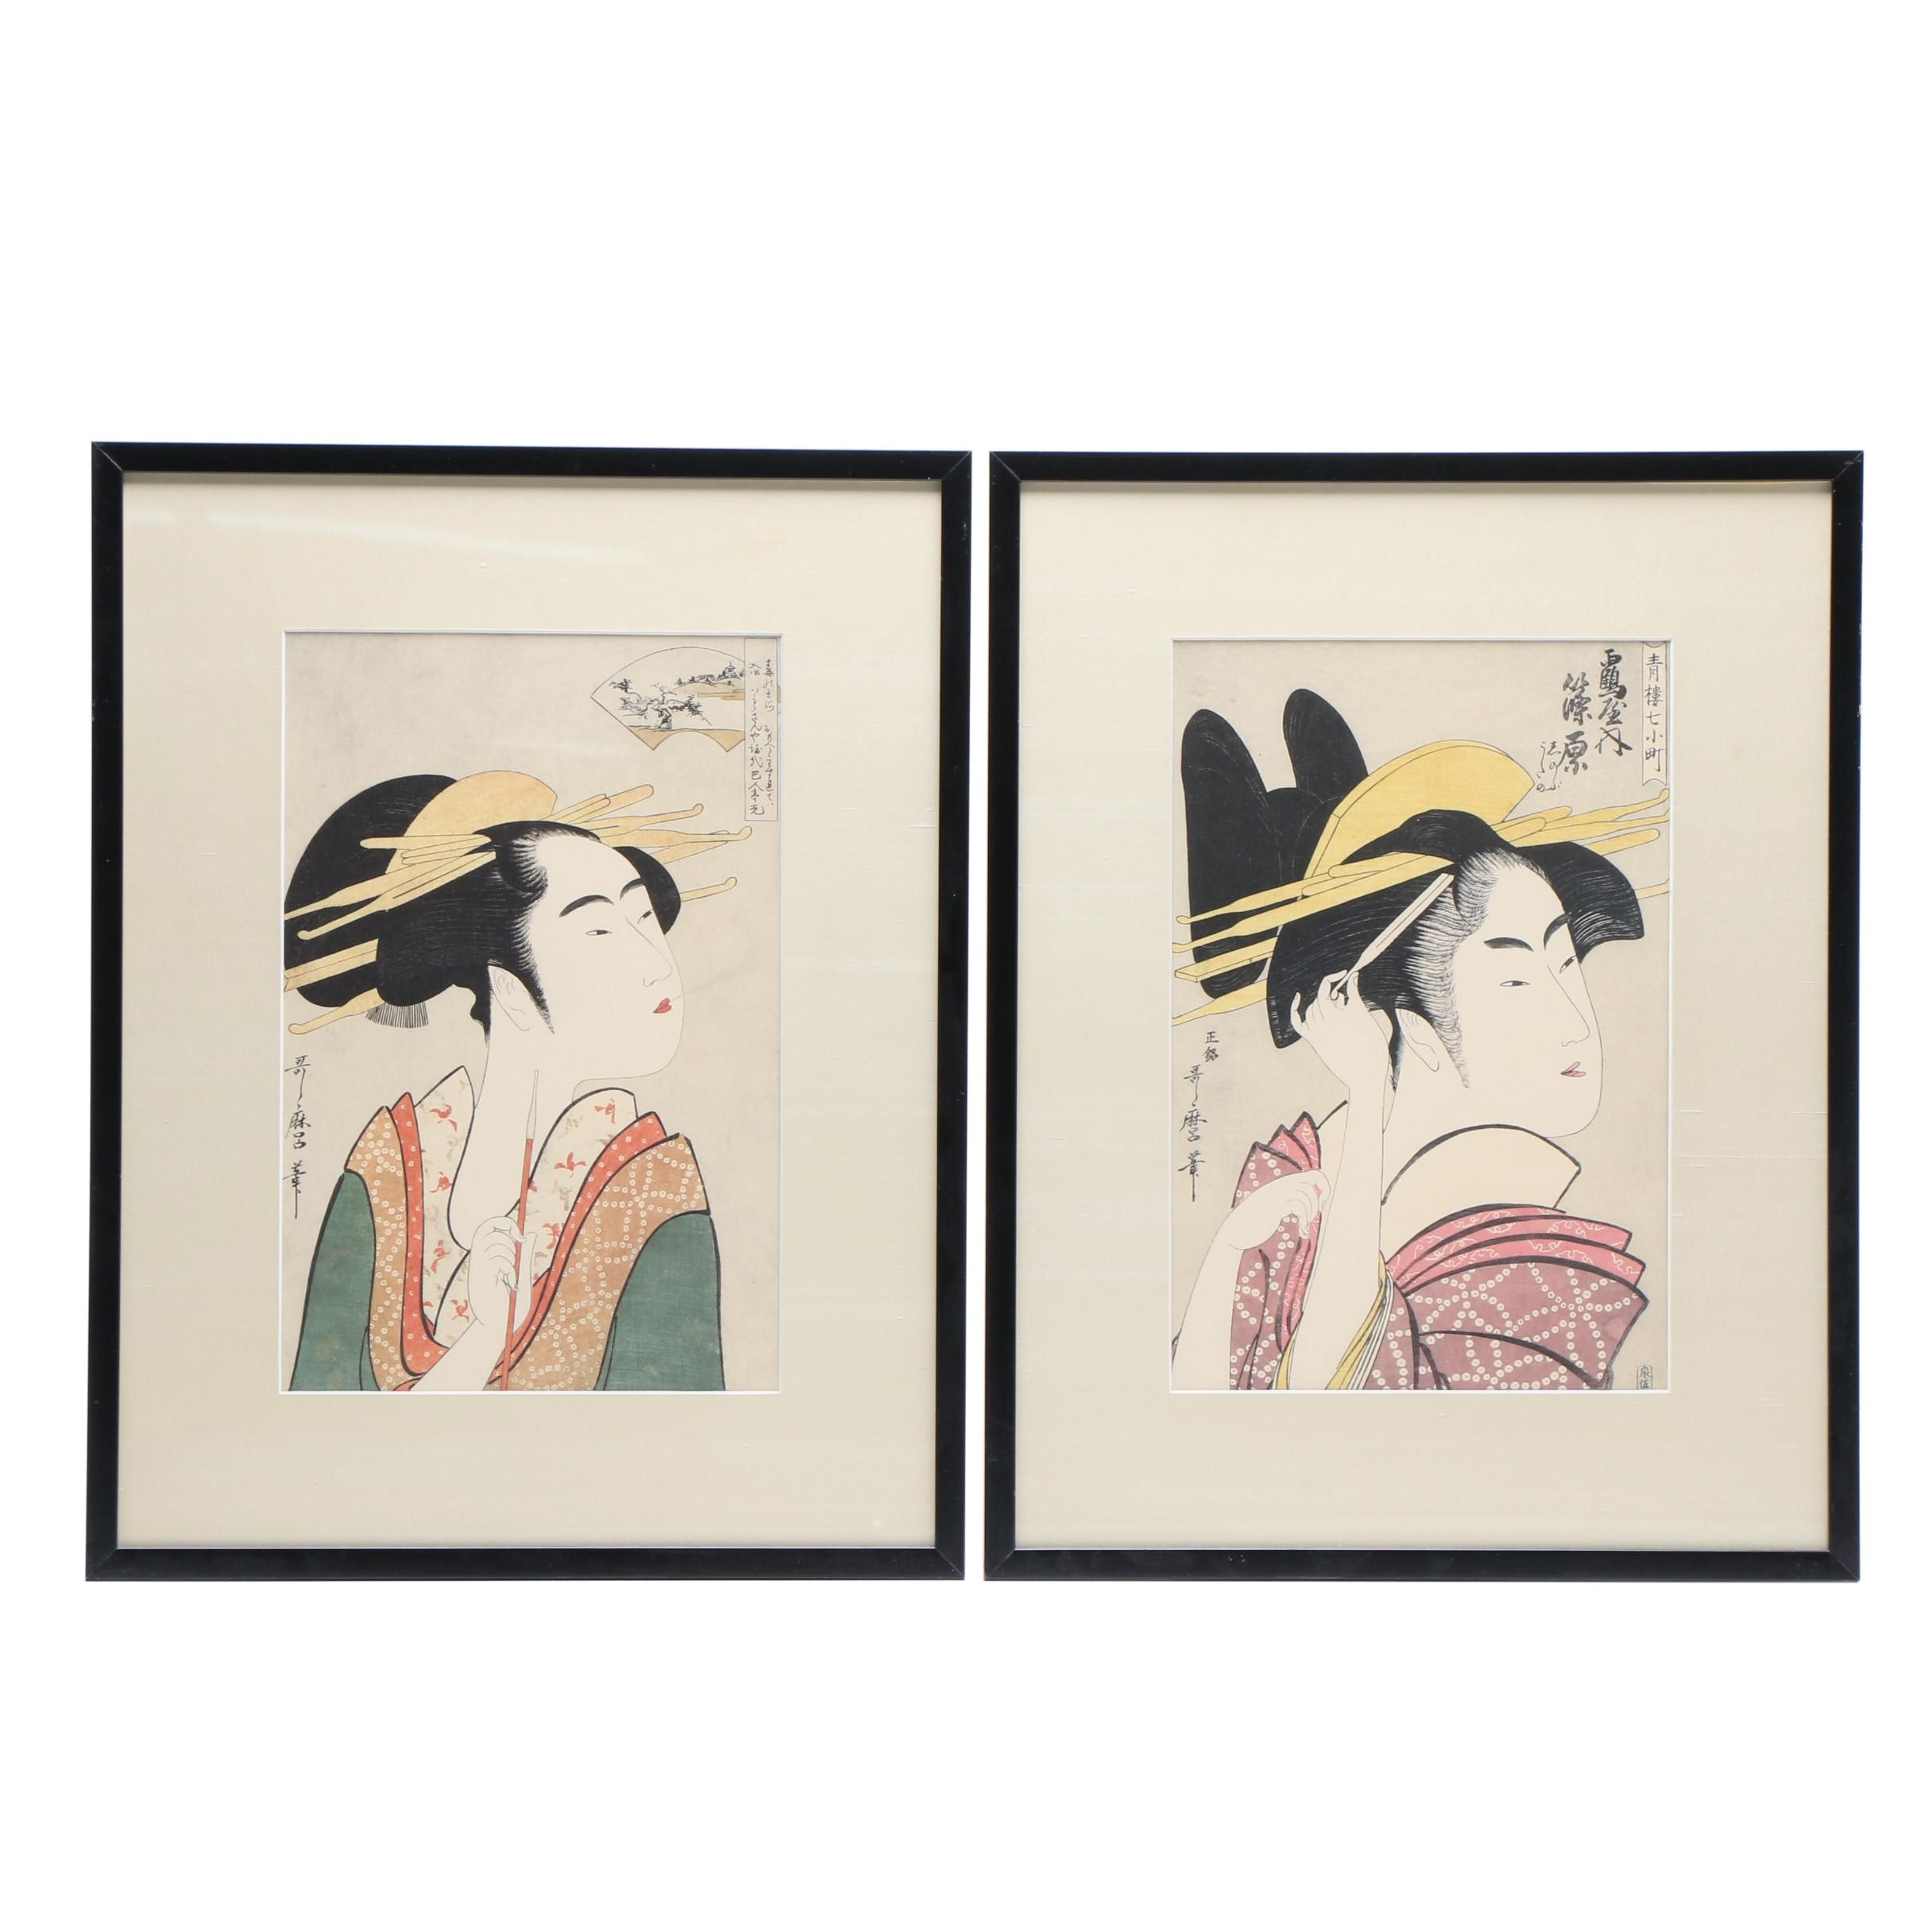 Offset Lithographic Reproductions after Kitagawa Utamaro Woodblocks